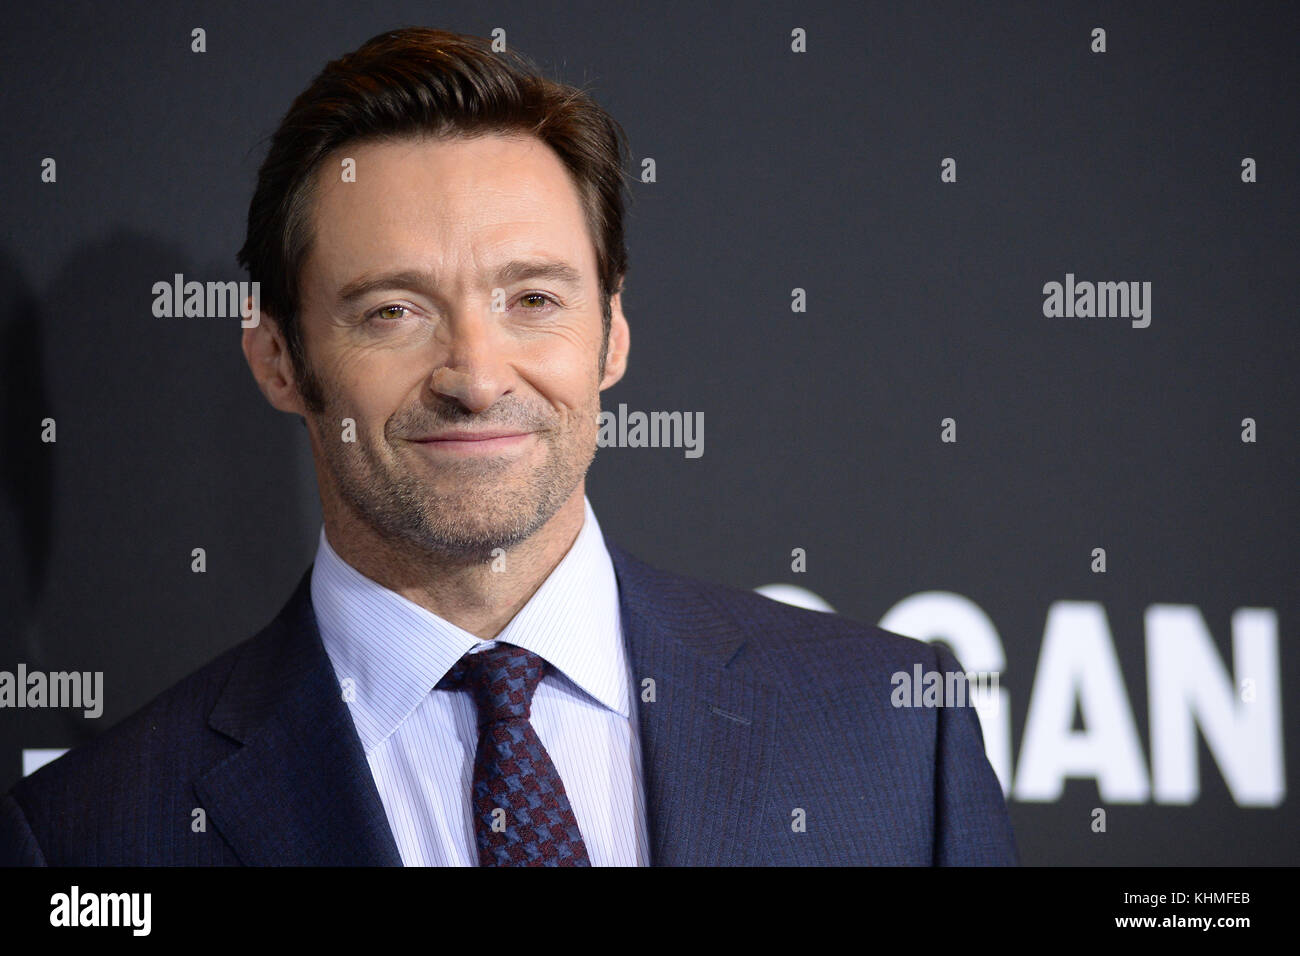 NEW YORK, NY - FEBRUARY 25:  Hugh Jackman  attends the 'Logan' New York screening at Rose Theater, Jazz - Stock Image